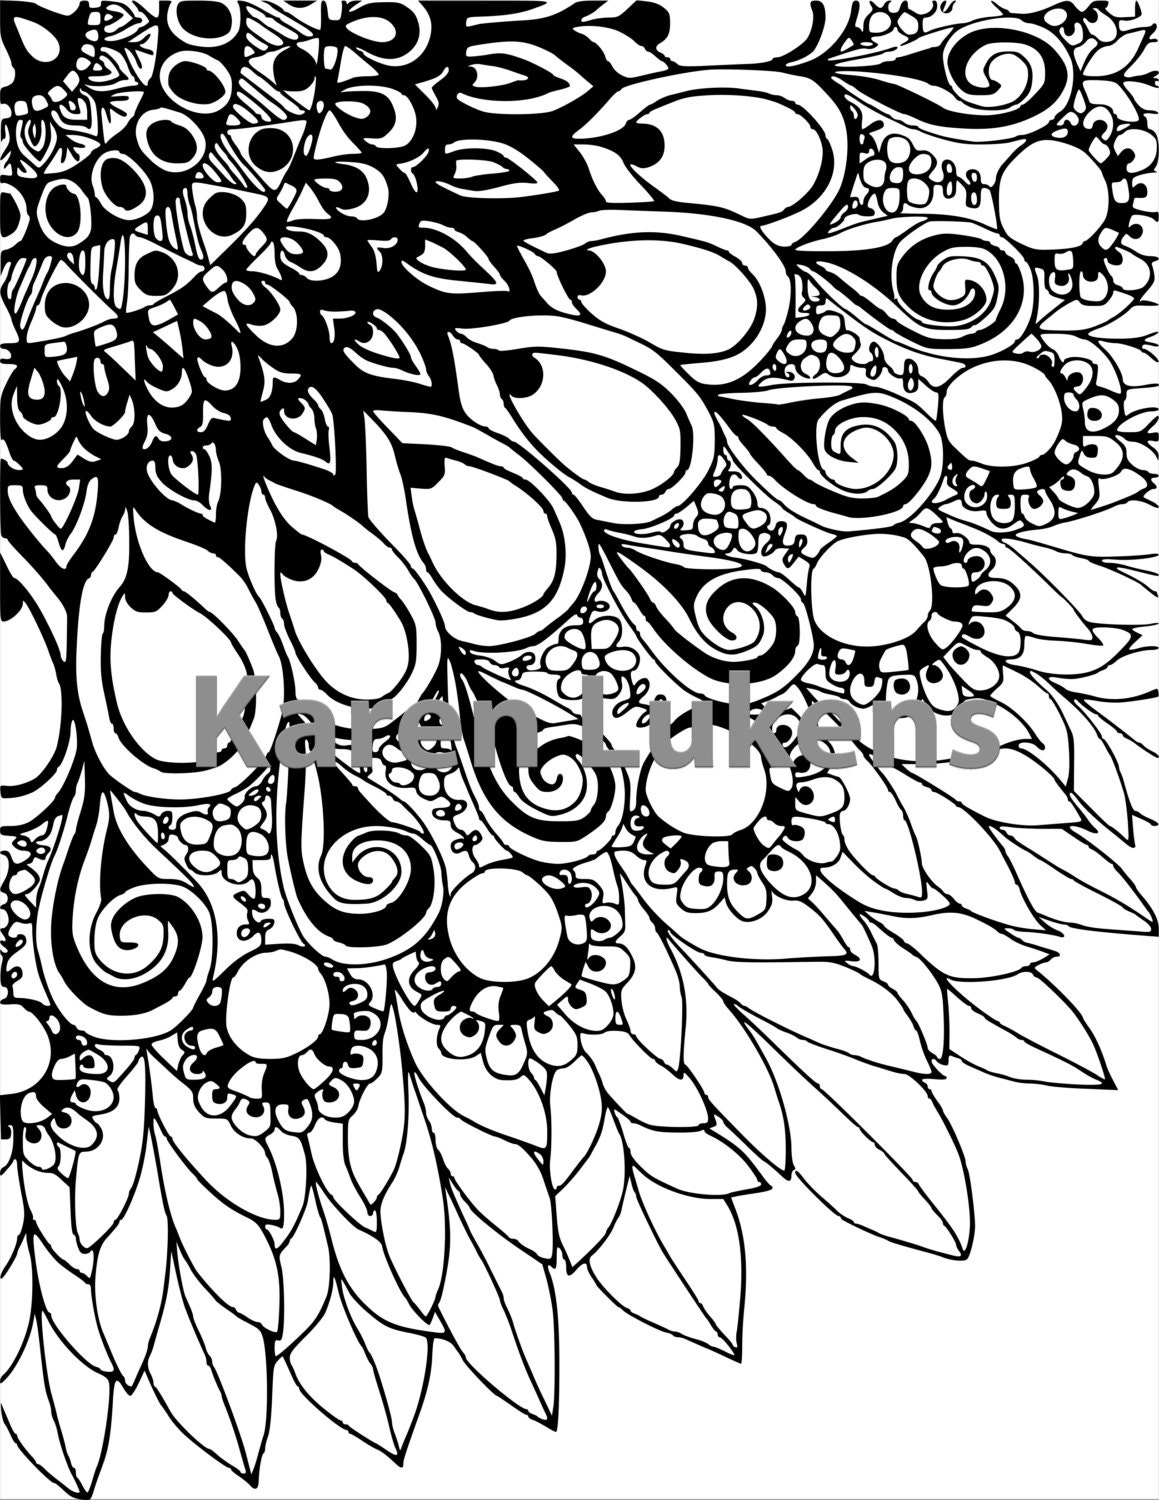 Coloring book download zip - Coloring Book Download Zip 47